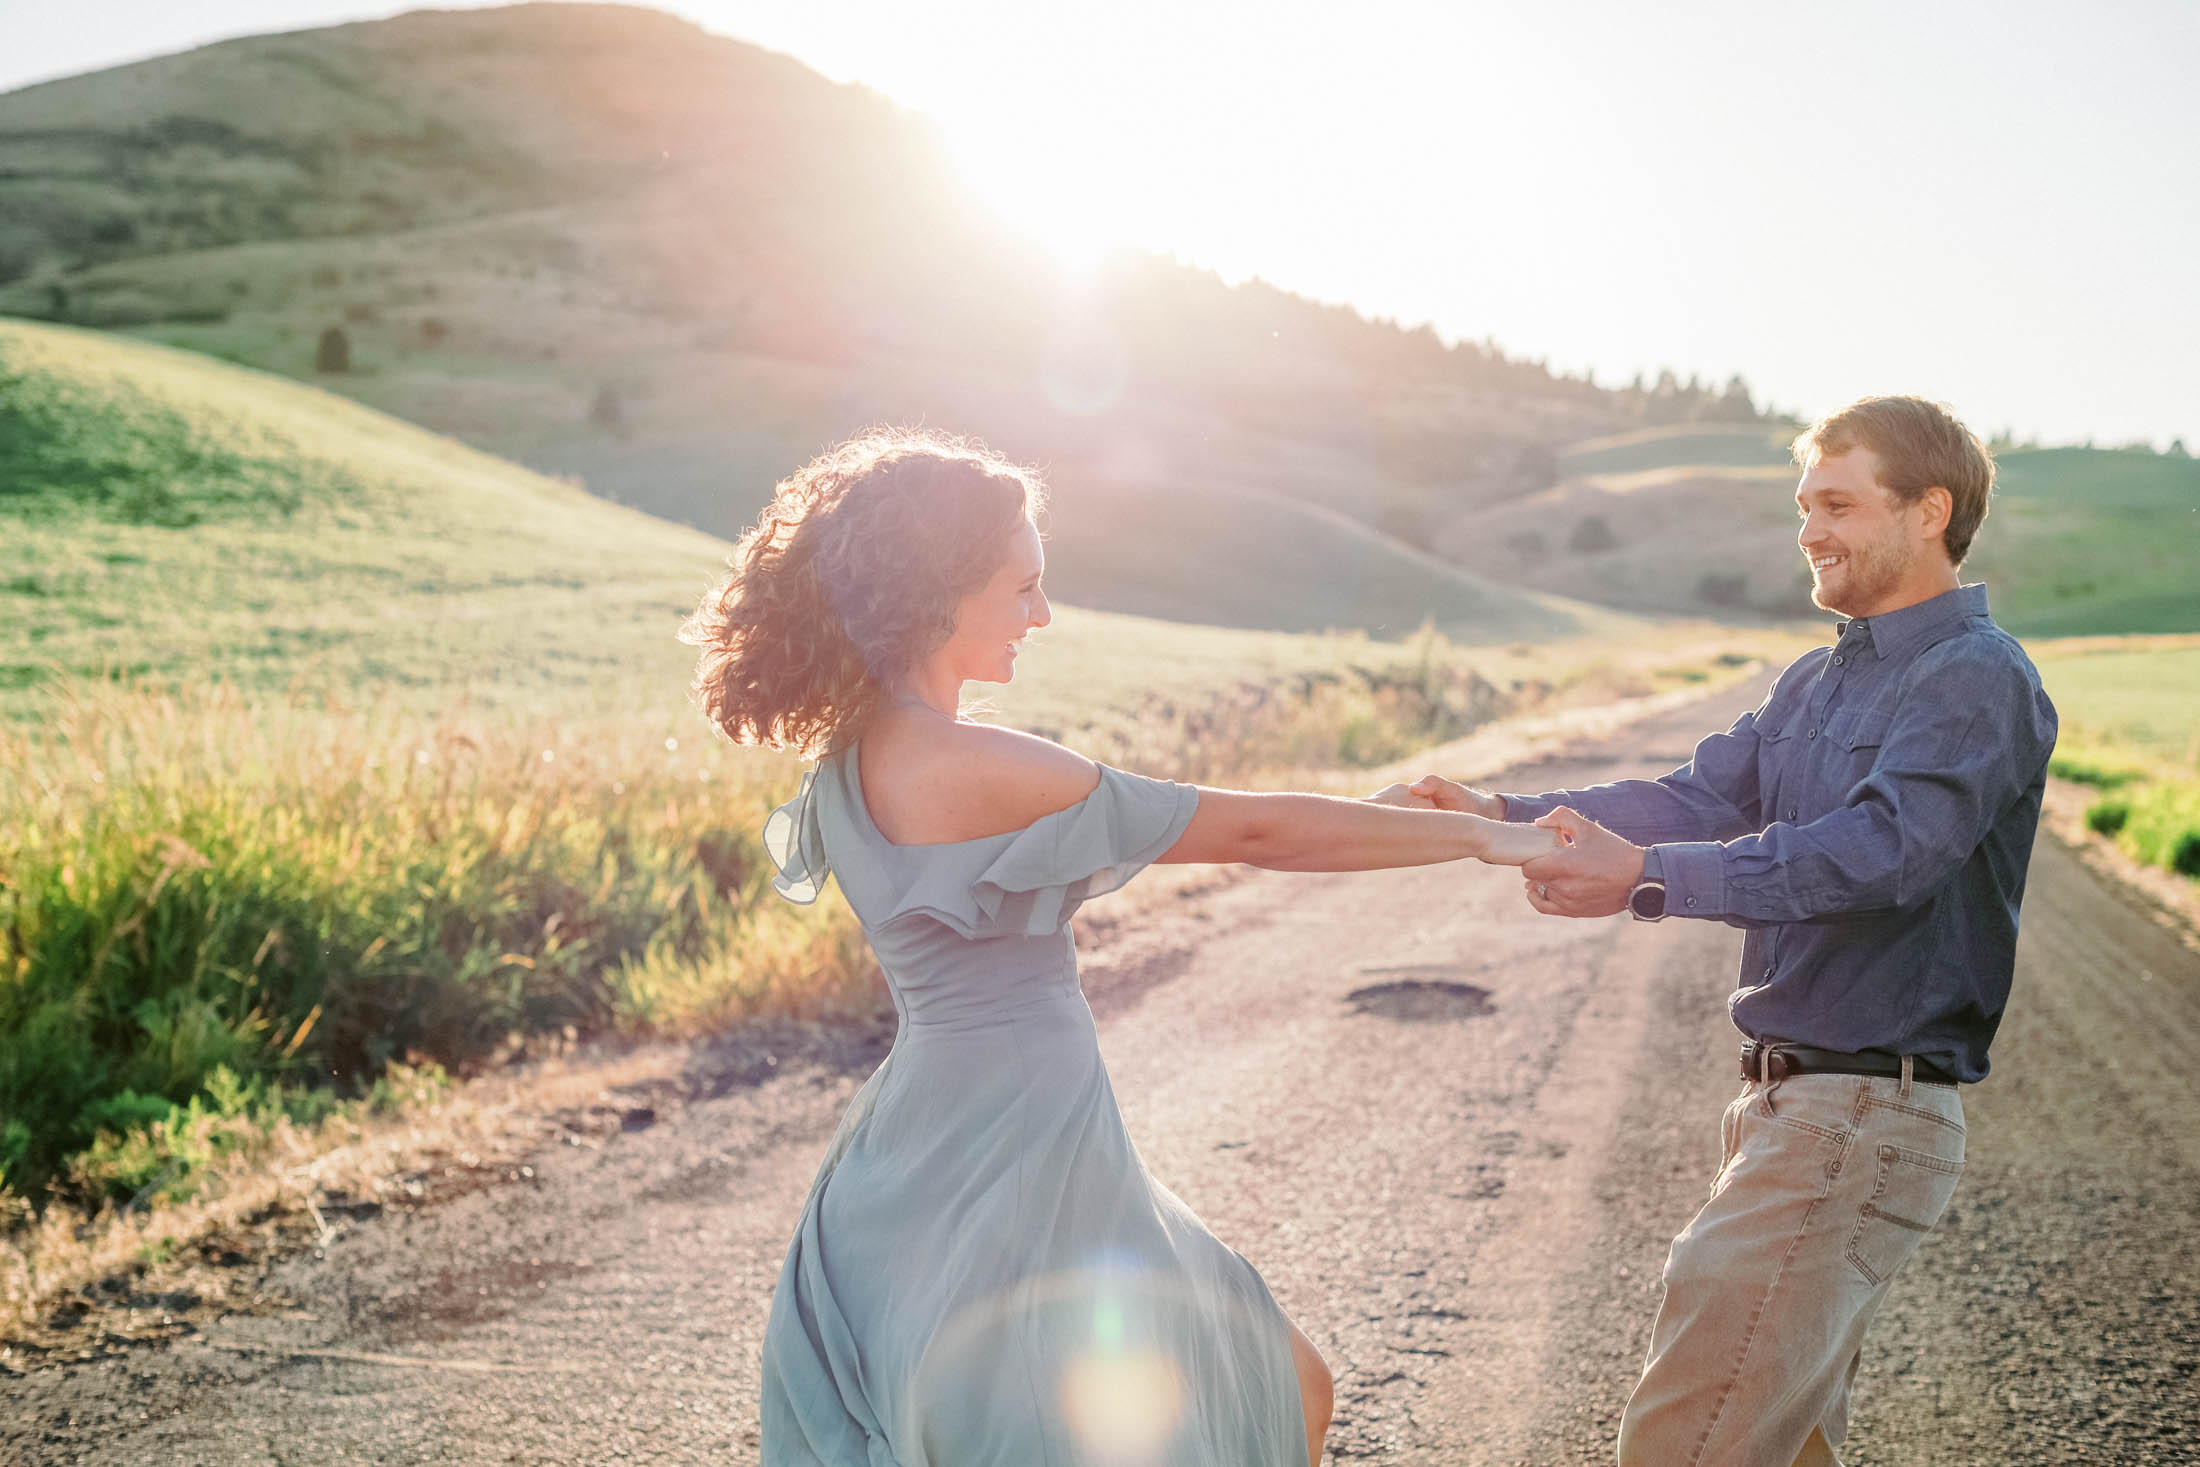 sunflare peeping over rolling hill with vibrant green grass as a couple spins hand in hand, girl with curly hair and green flowy dress, man in a blue denim shirt and kahki pants